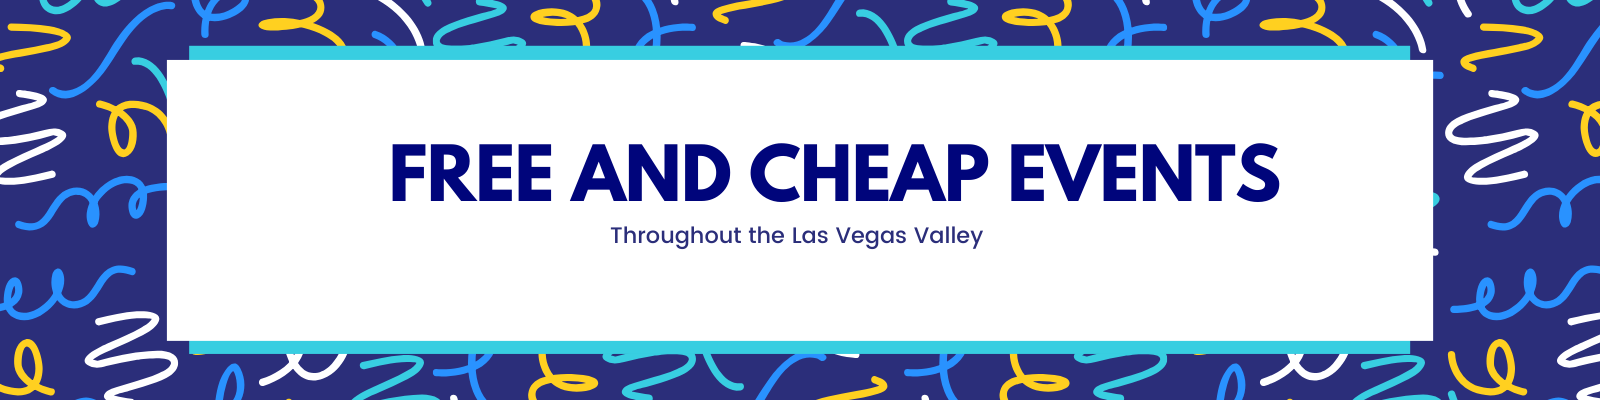 "Image says ""Free and Cheap Events Throughout the Las Vegas Valley"""